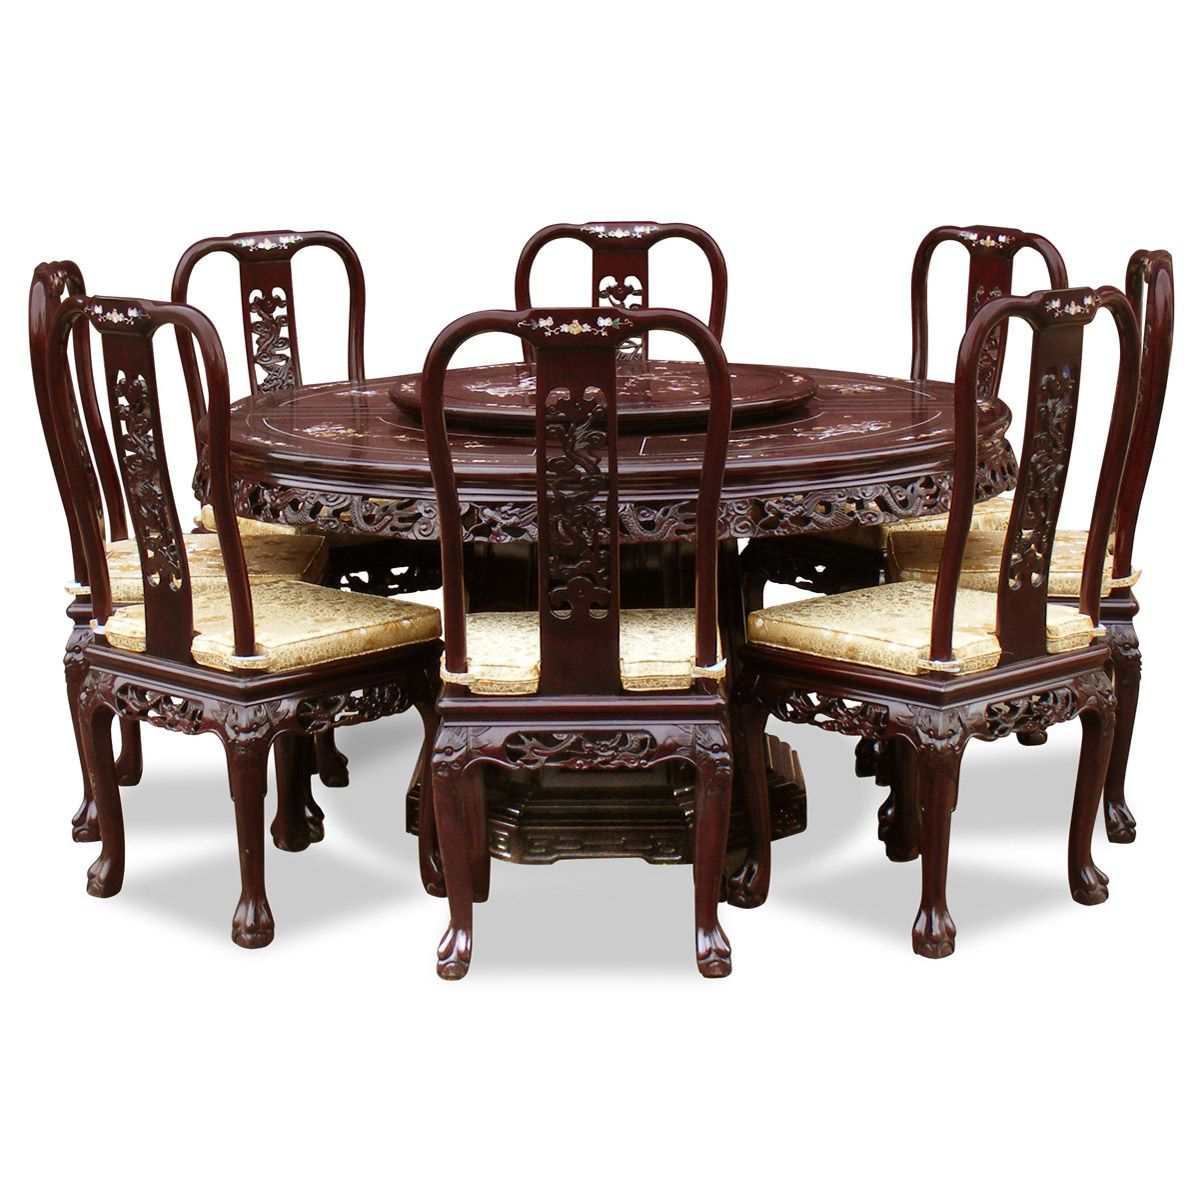 60in Rosewood Queen Ann Pearl Inlay Motif Round Dining Table With 8 Chairs The Style